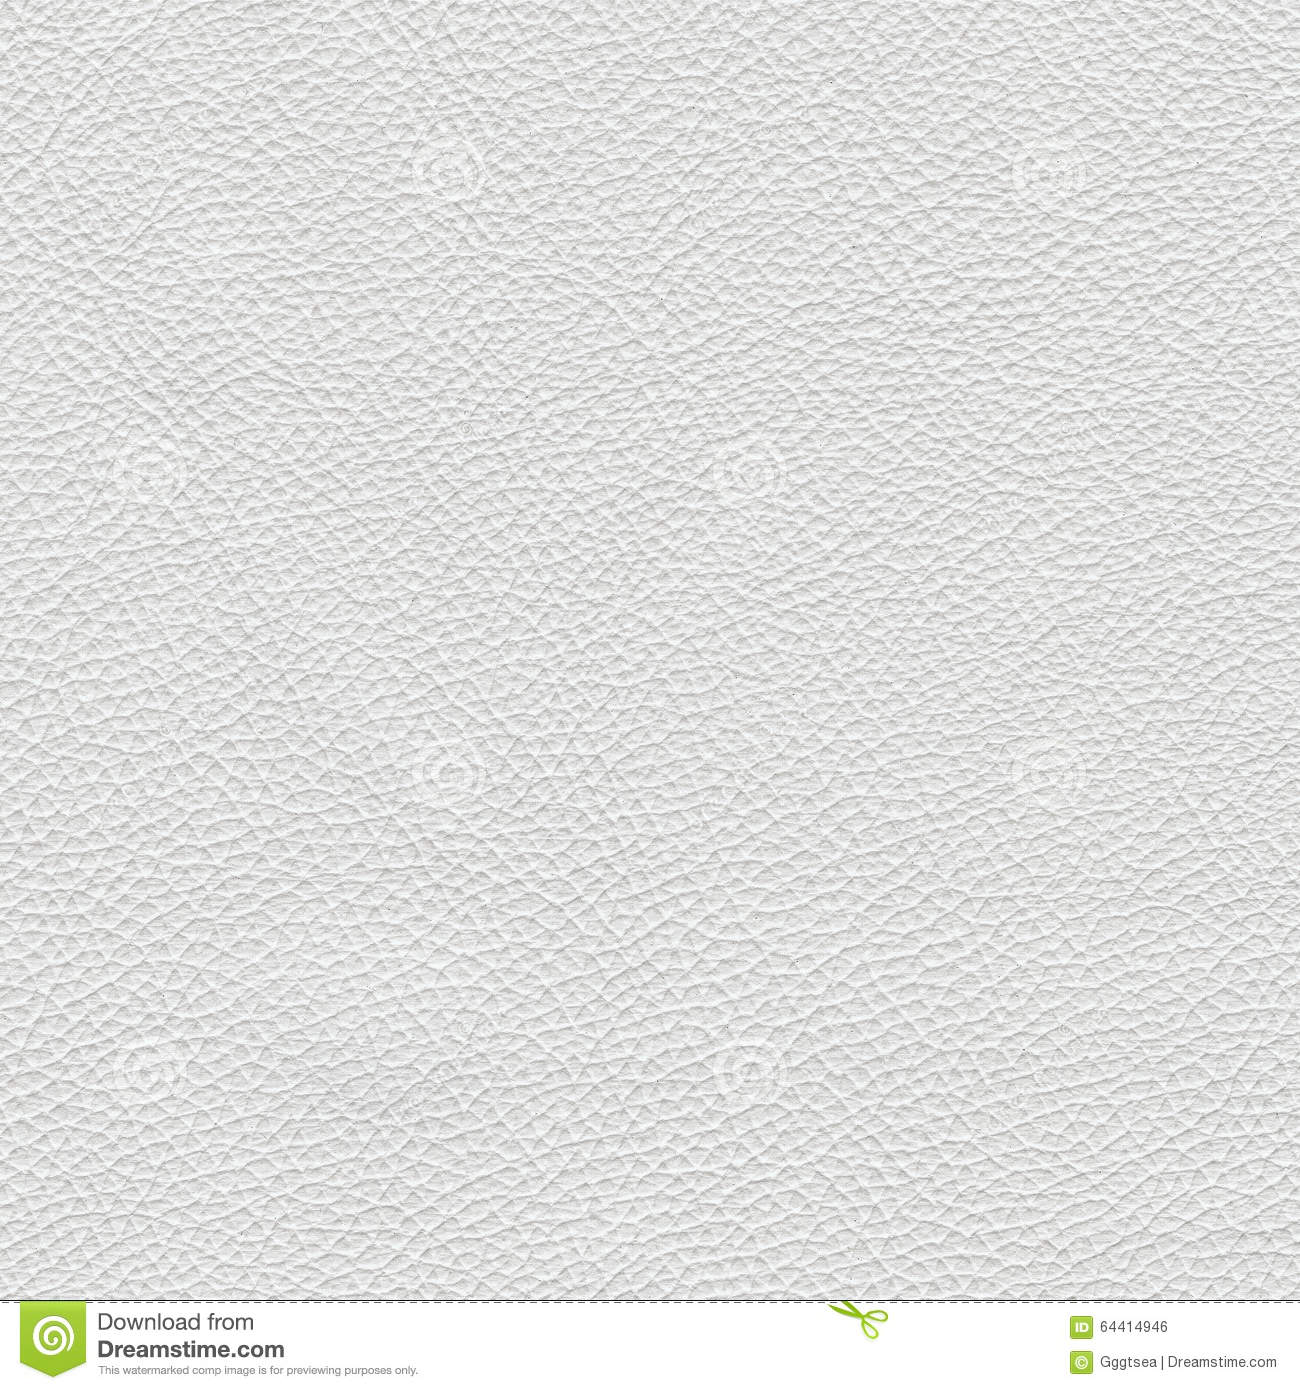 Rough Texture Background: Rough Stylized Drawing